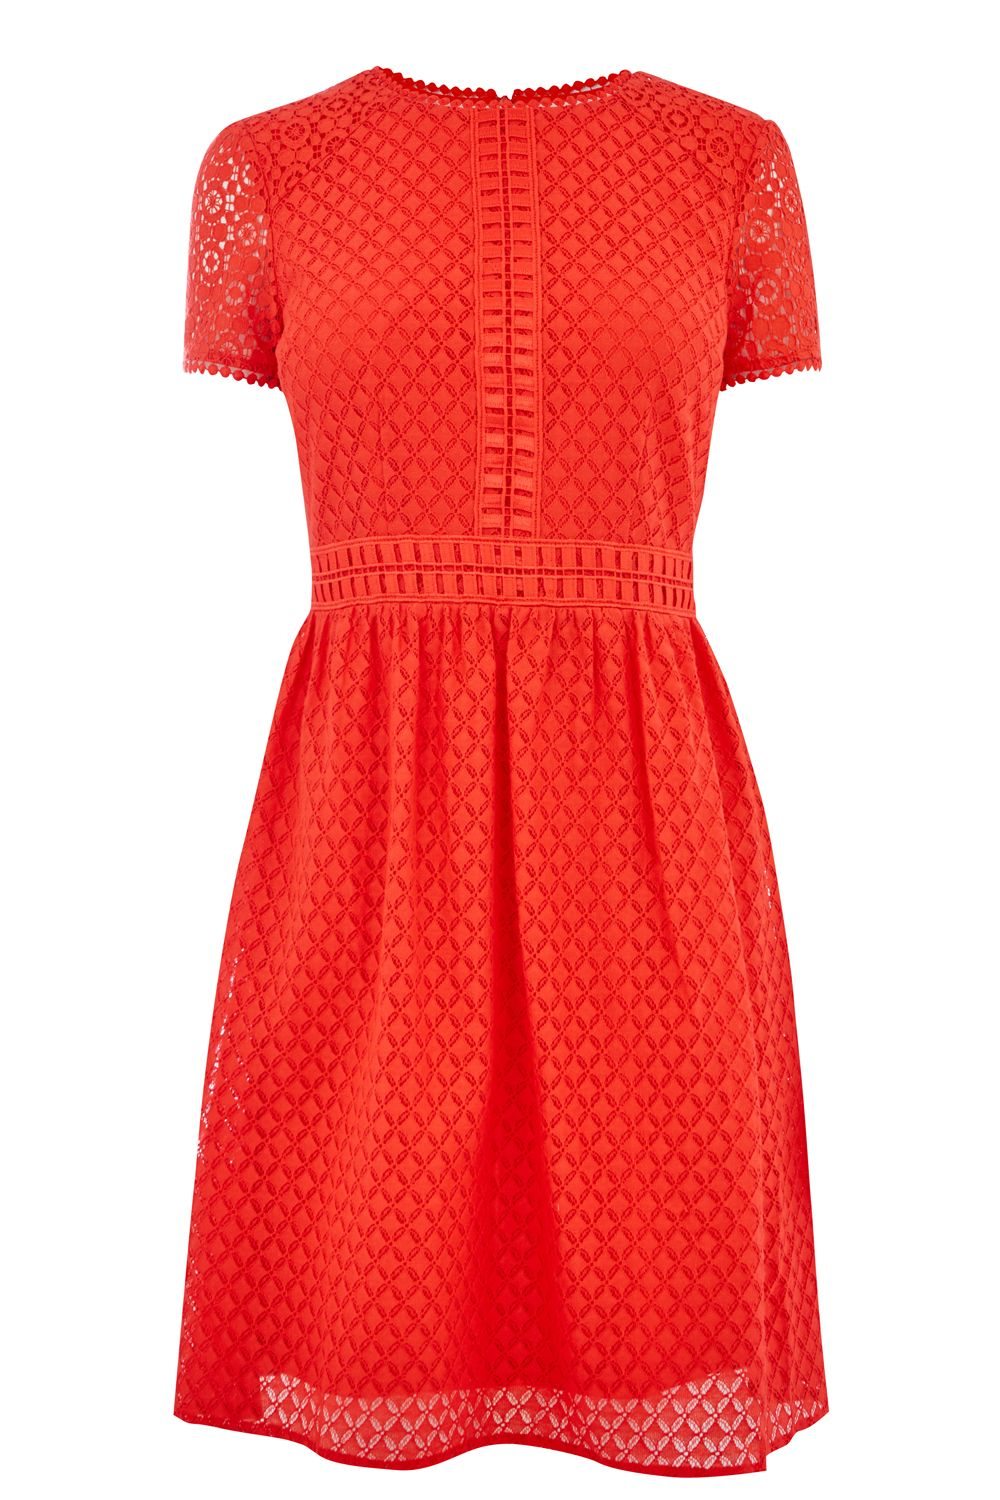 Oasis LACE DAY SKATER DRESS, Red